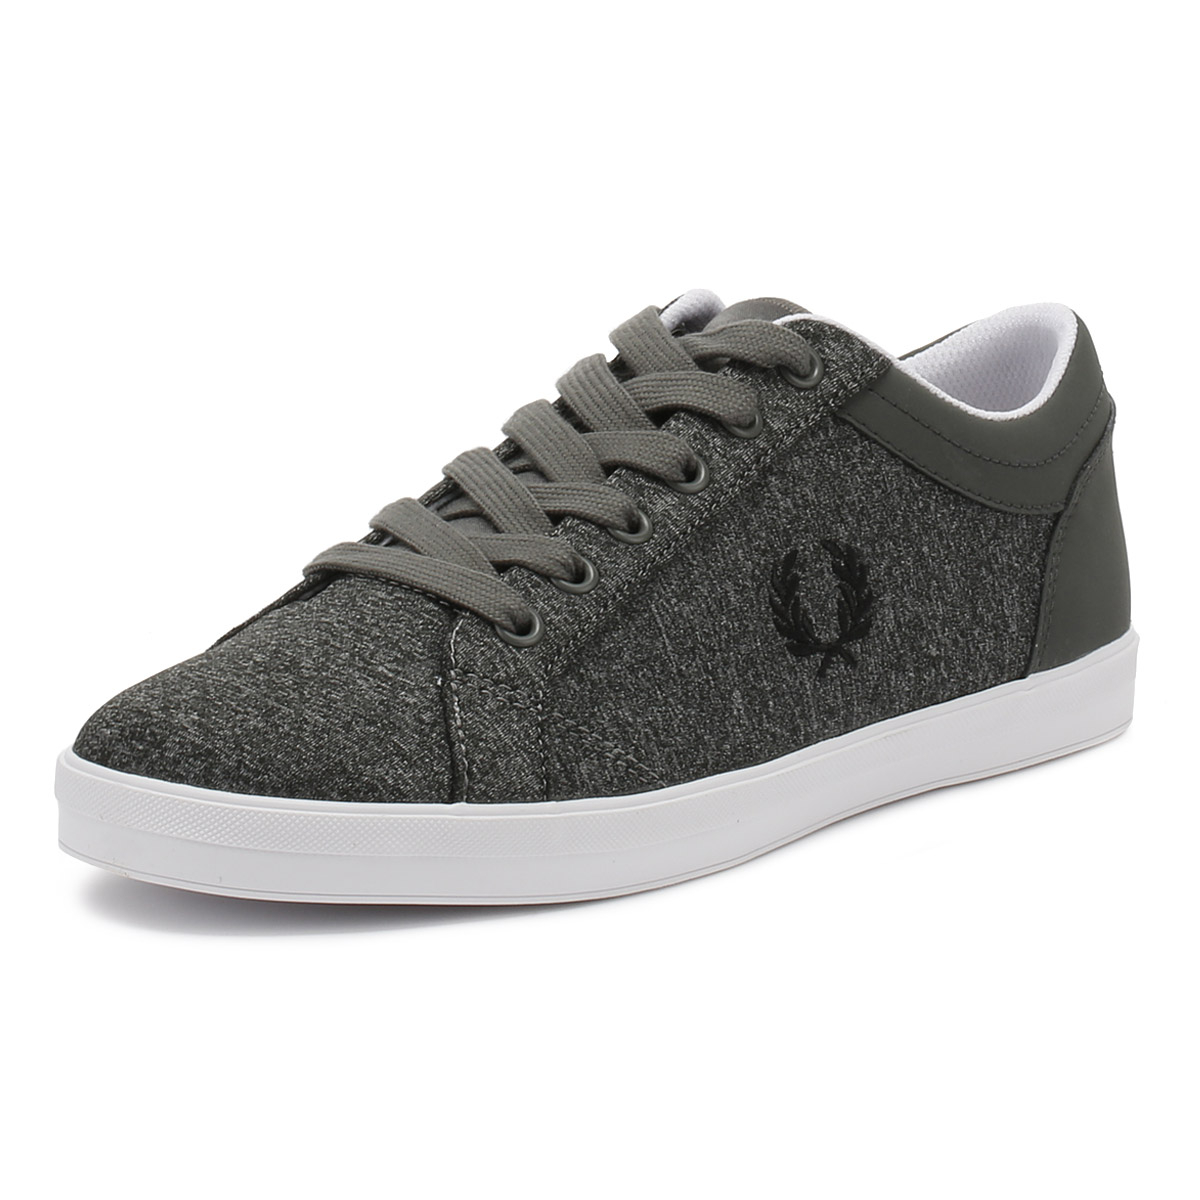 Fred Perry Mens Trainers Falcon Grey Baseline Marl Lace Up Sport Casual Shoes